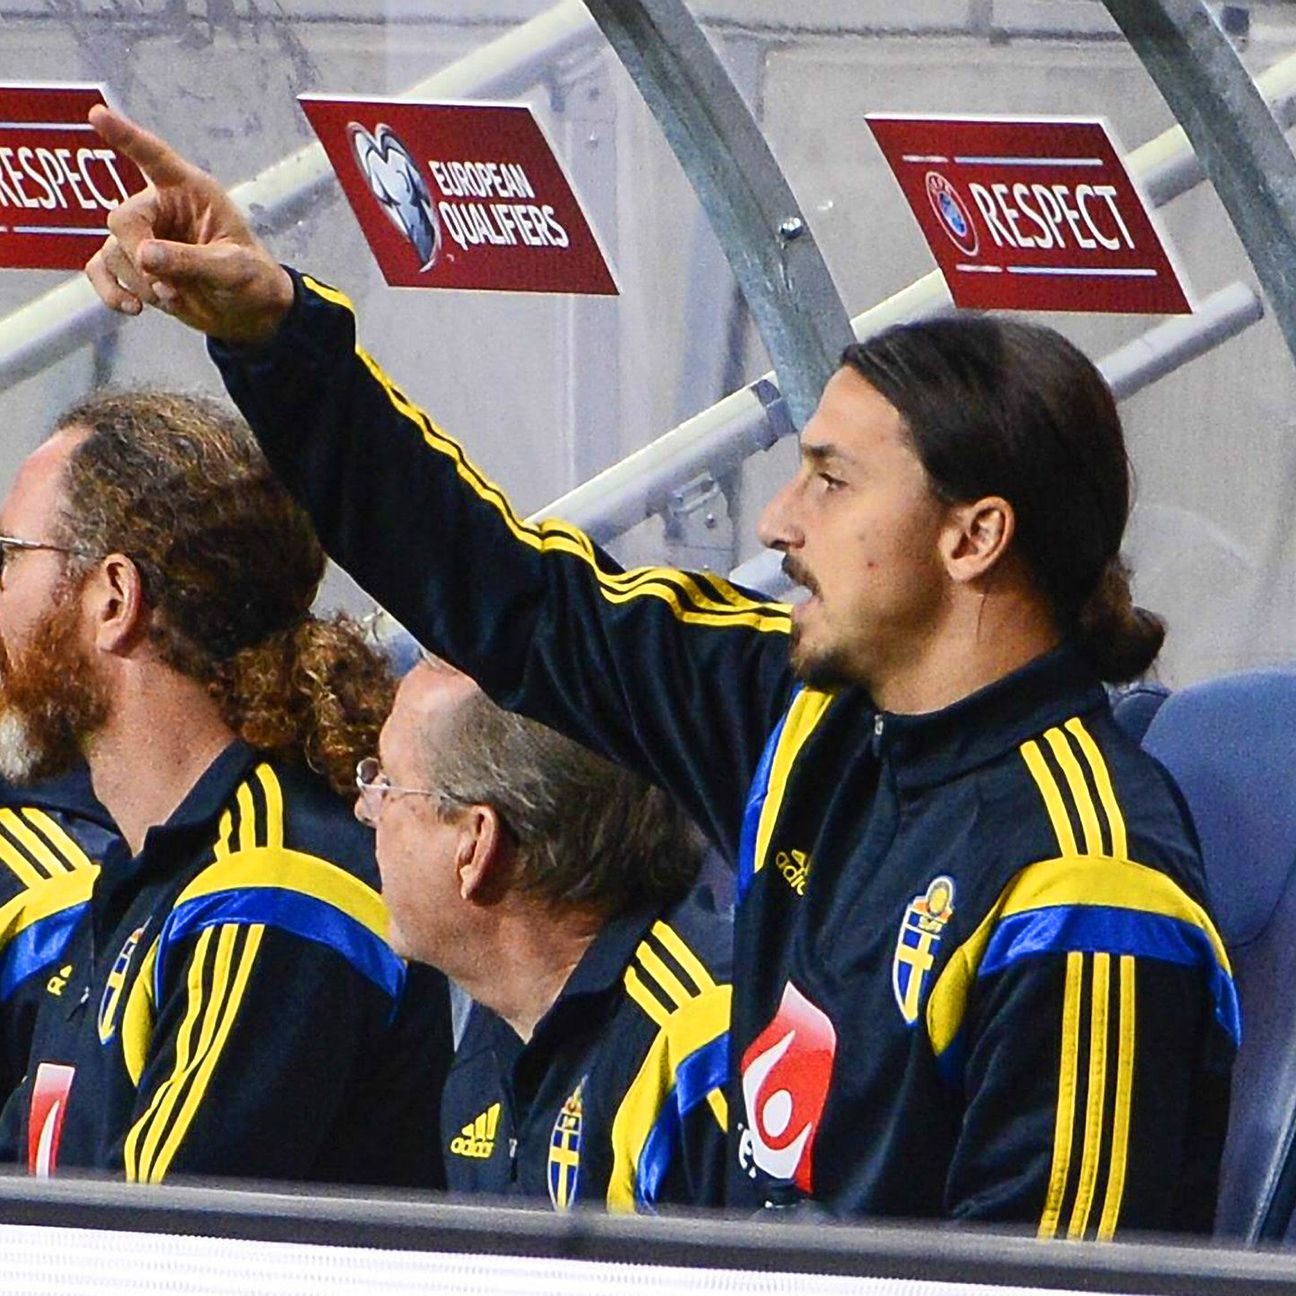 Zlatan Ibrahimovic was reduced to spectator status in Sweden's 1-1 draw versus Russia.